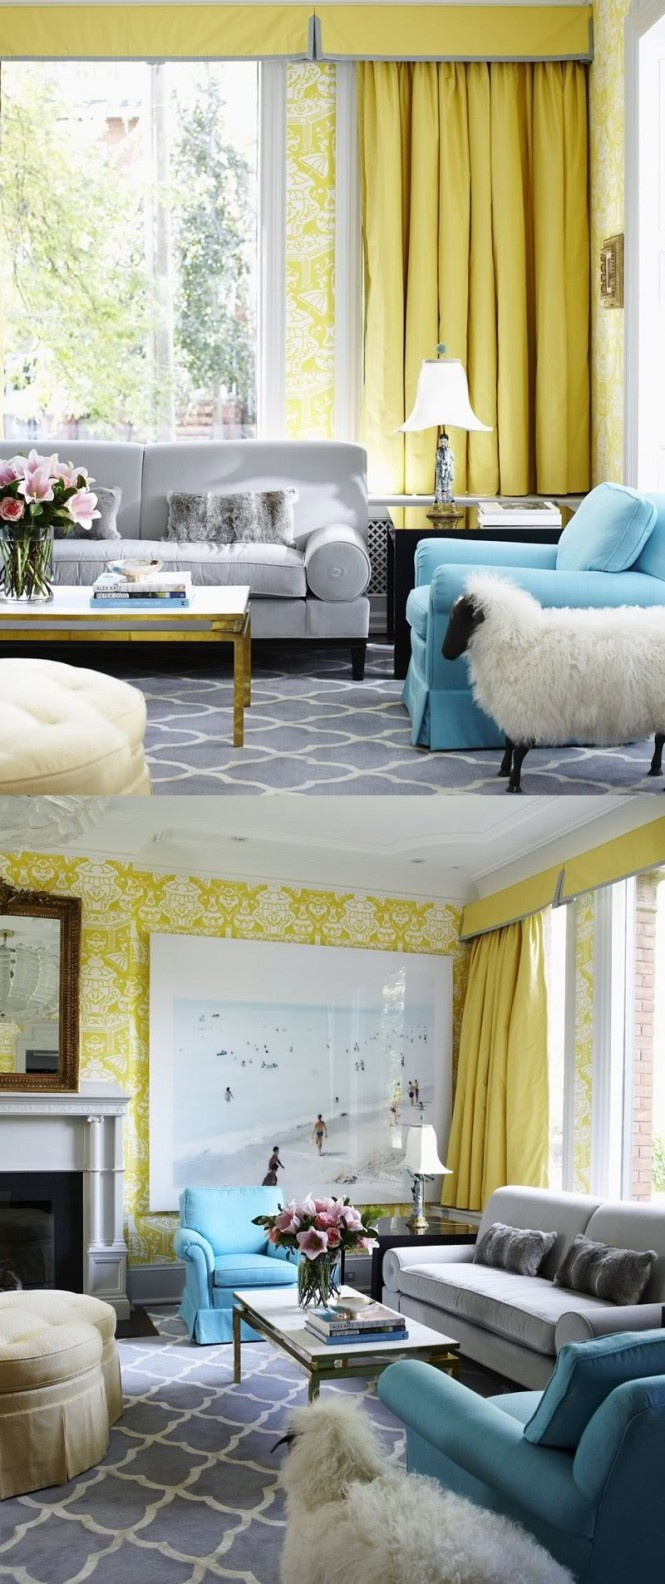 Yellow room interior inspiration 55 rooms for your viewing pleasure Gray blue yellow living room